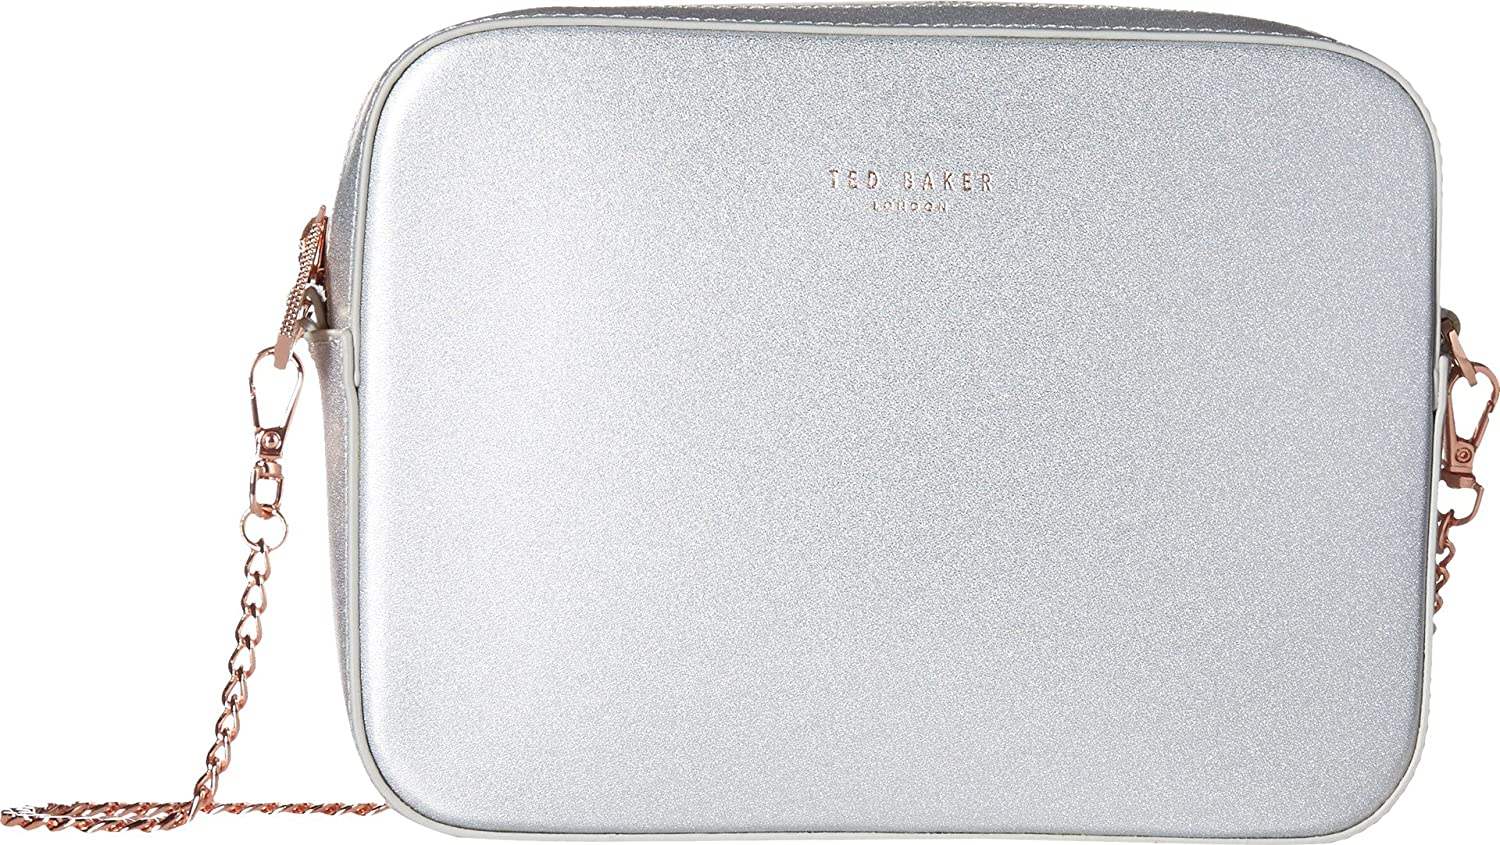 f609441b9 Ted Baker Laneyy, Silver: Amazon.co.uk: Shoes & Bags